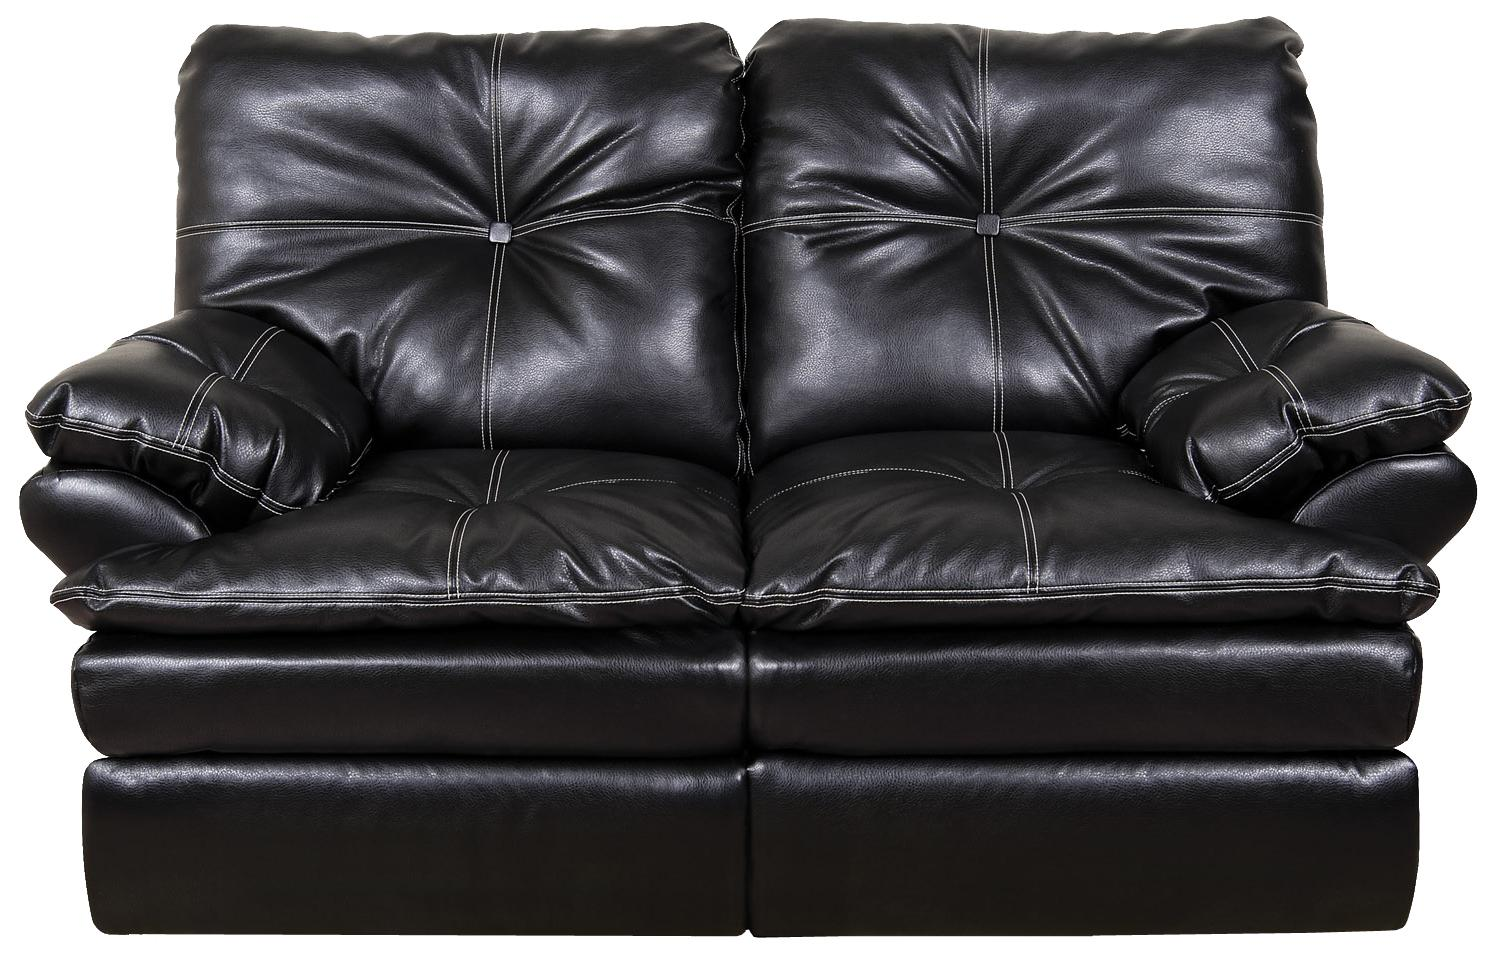 England Miranda and Lloyd  Double Reclining Loveseat - Item Number: 3013 O